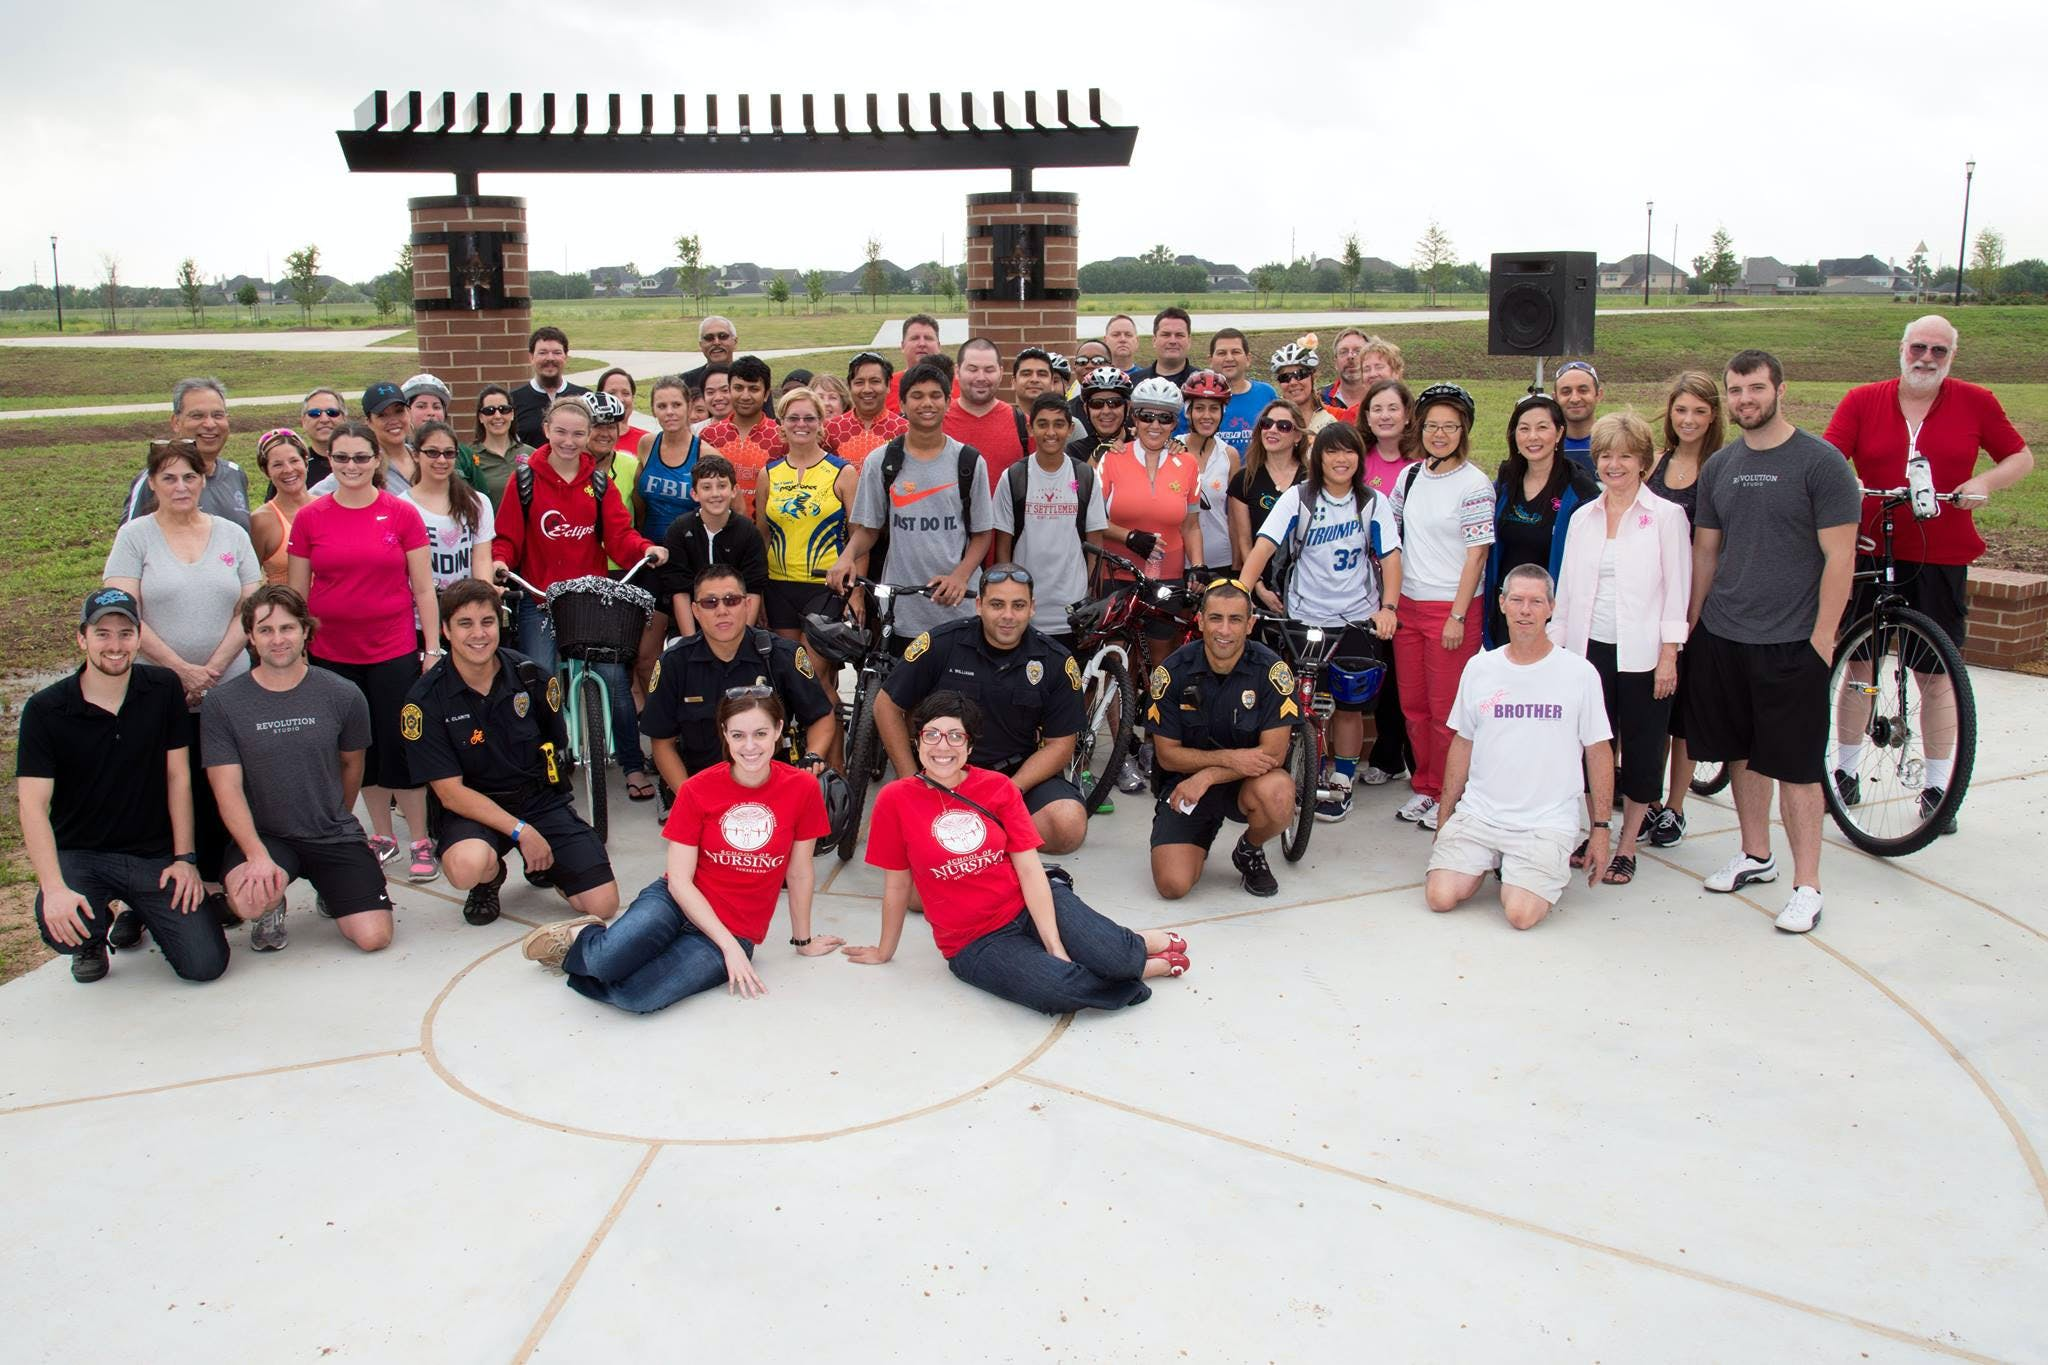 9th-annual-Sugar-Land-Bike-to-SchoolWork-event